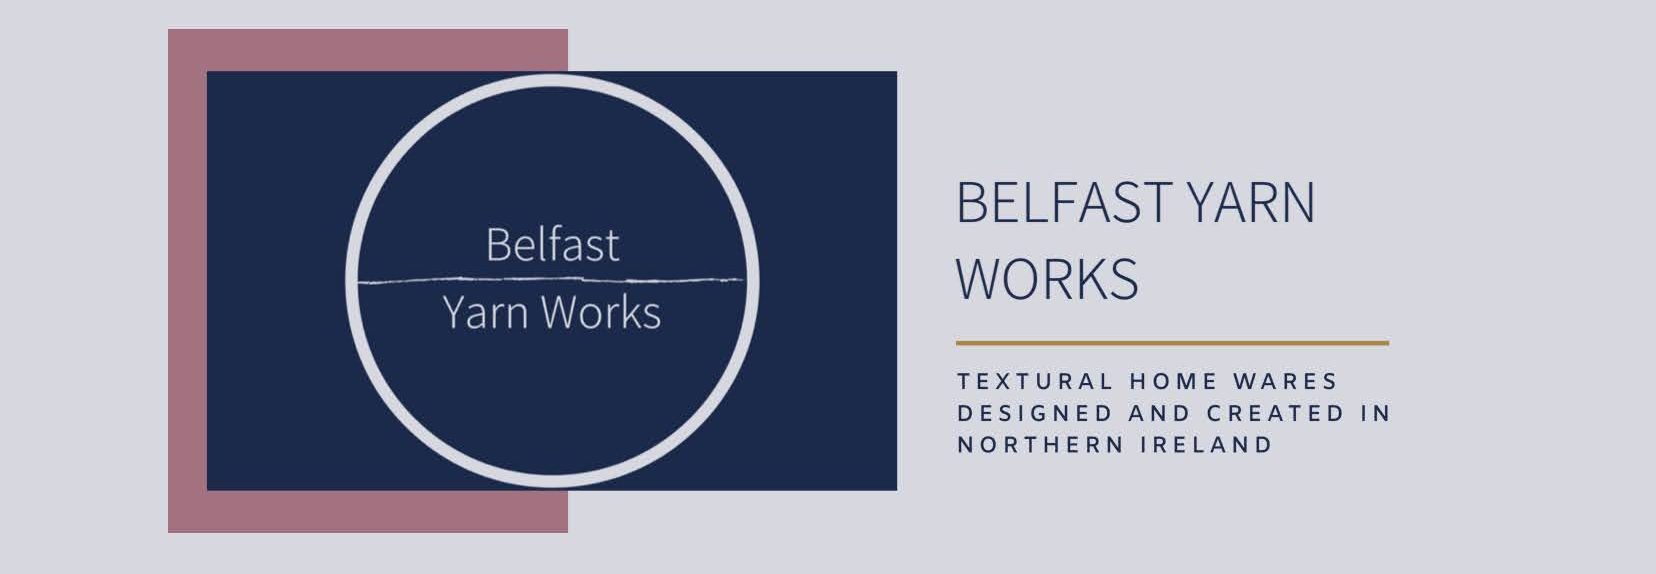 Belfast Yarn Works